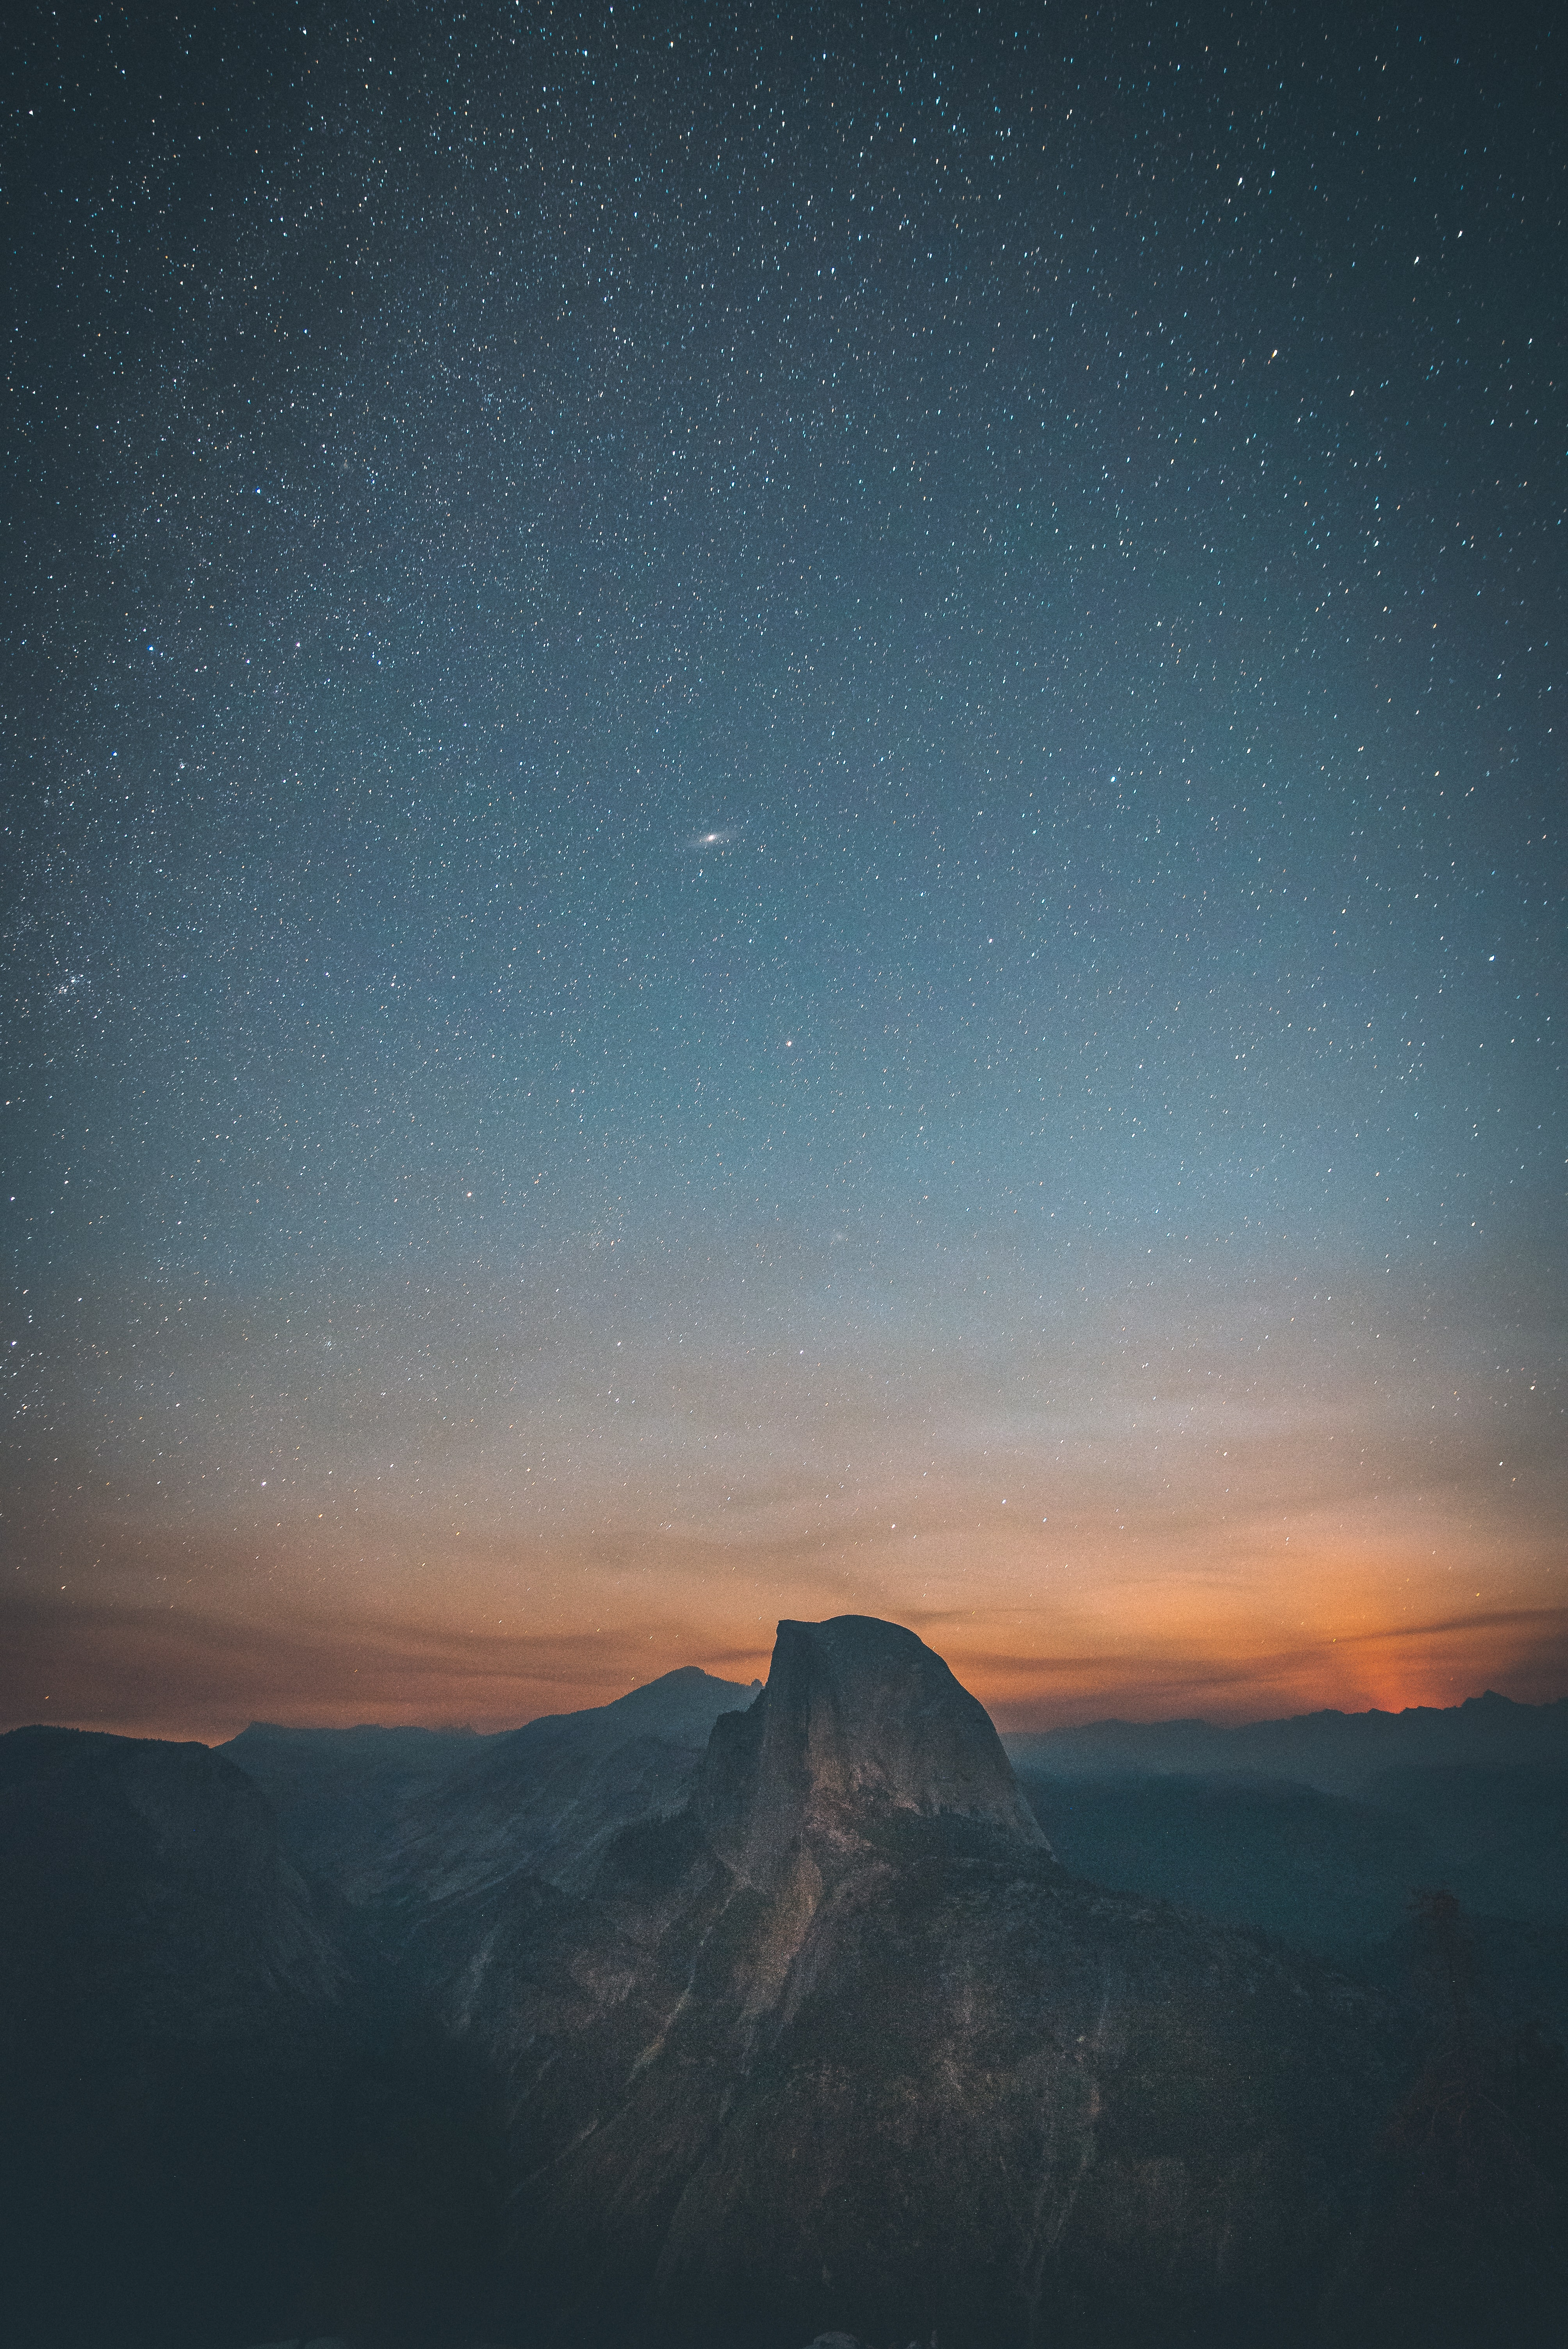 mountains under starry sky